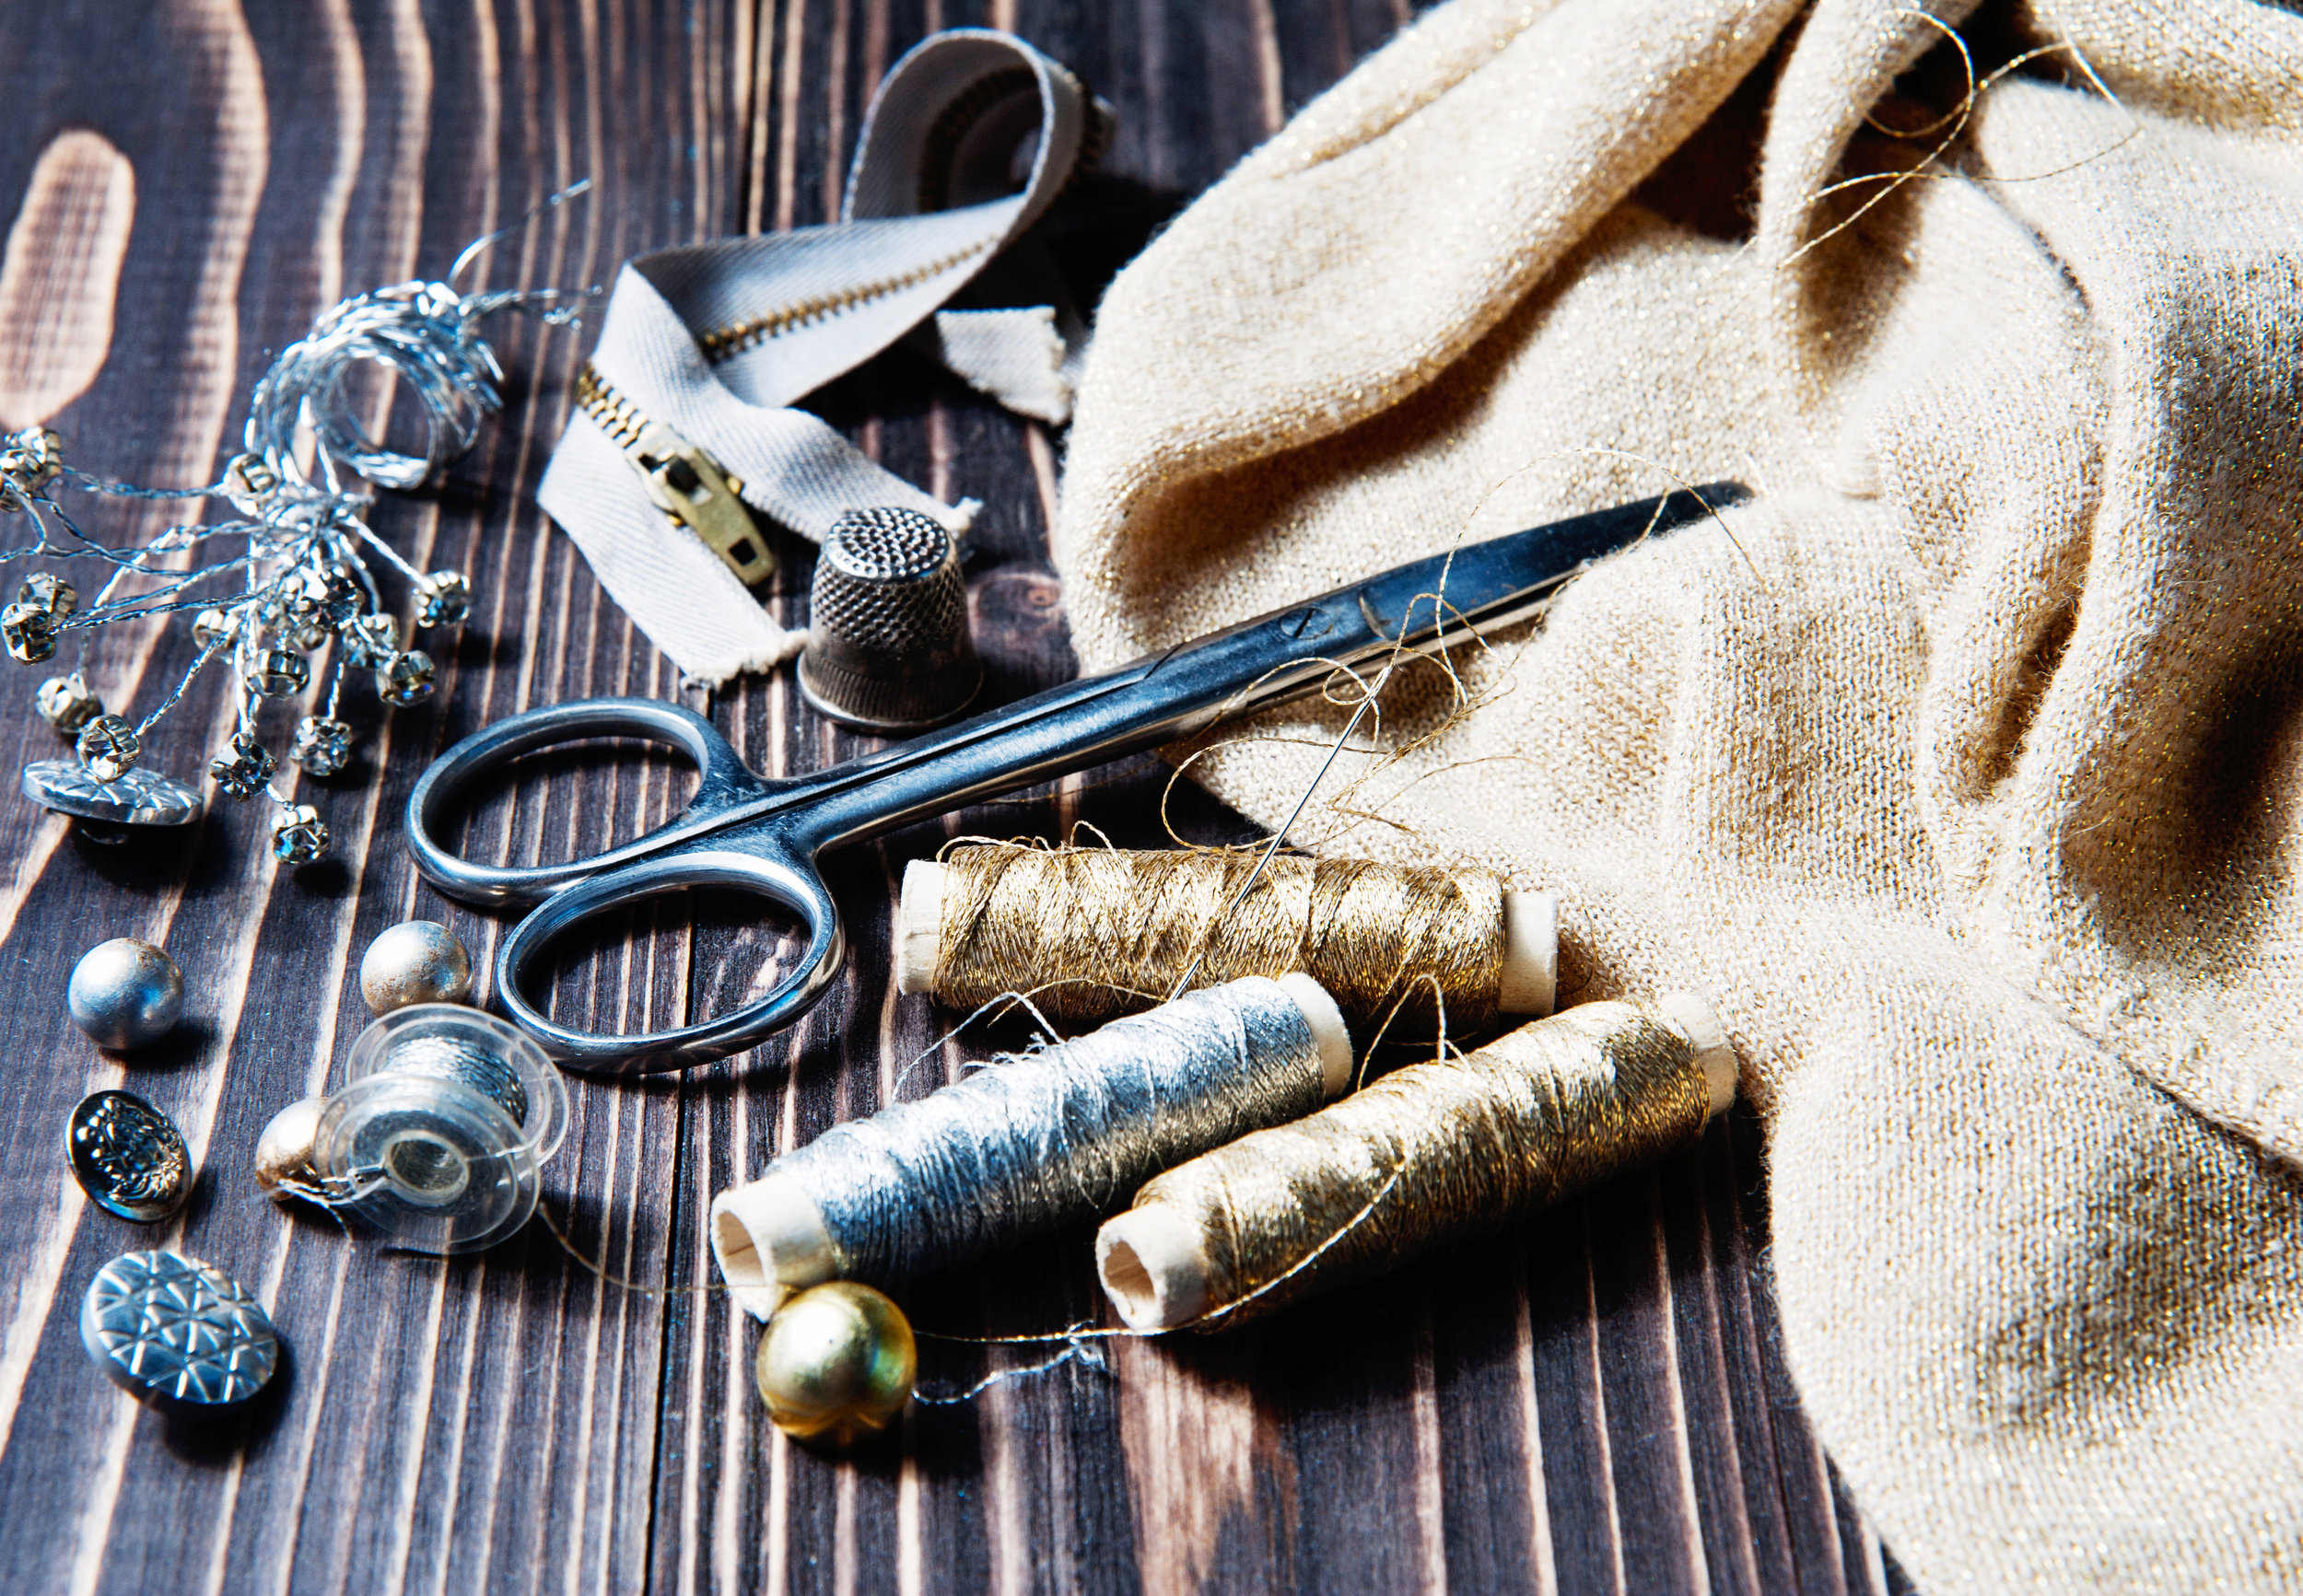 Scissors, cotton reels, thimbles and the tools of an Upholsterer's trade